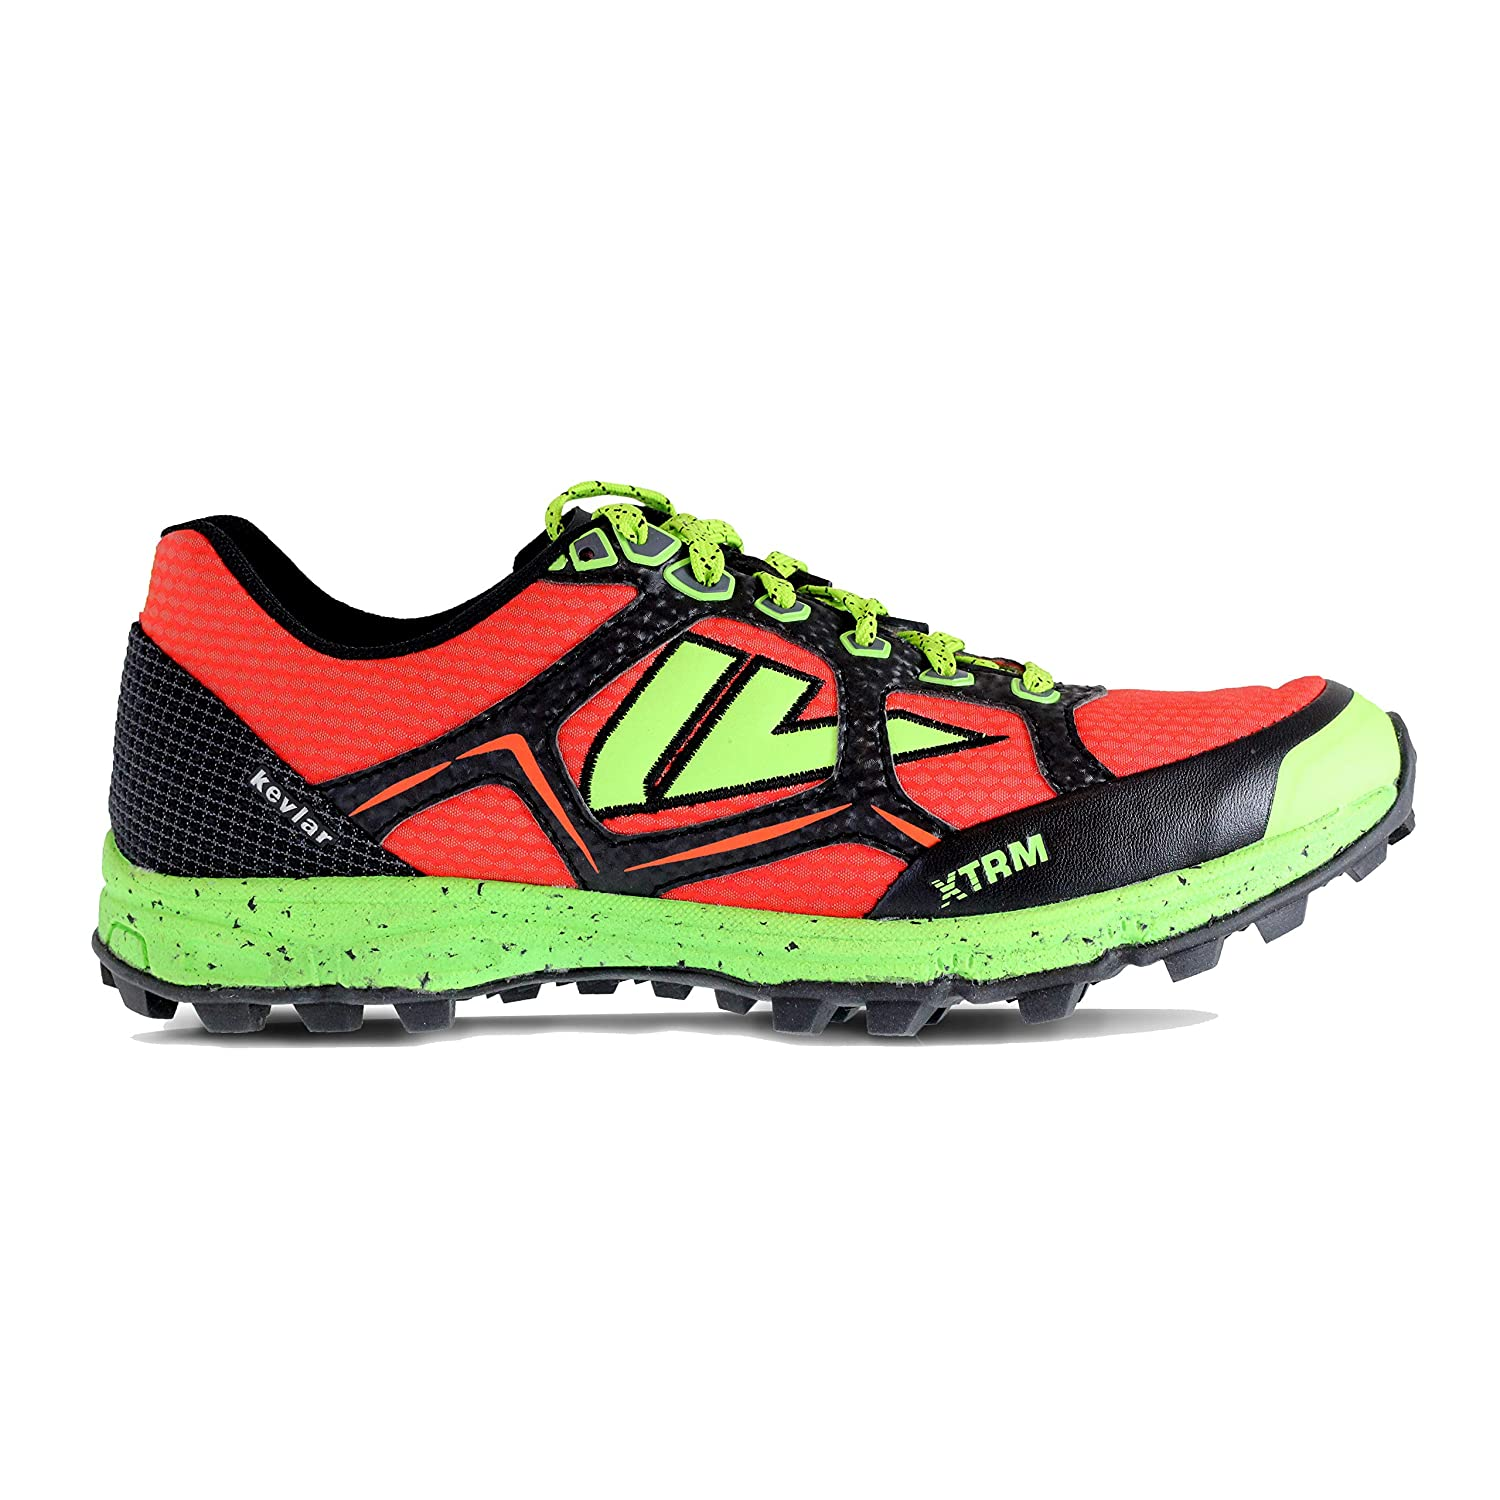 VJ XTRM OCR Shoes Trail Running Shoes Women and Mens with a Full Length Rock Plate Made for Rocky and Technical Mountain Trails and Obstacle